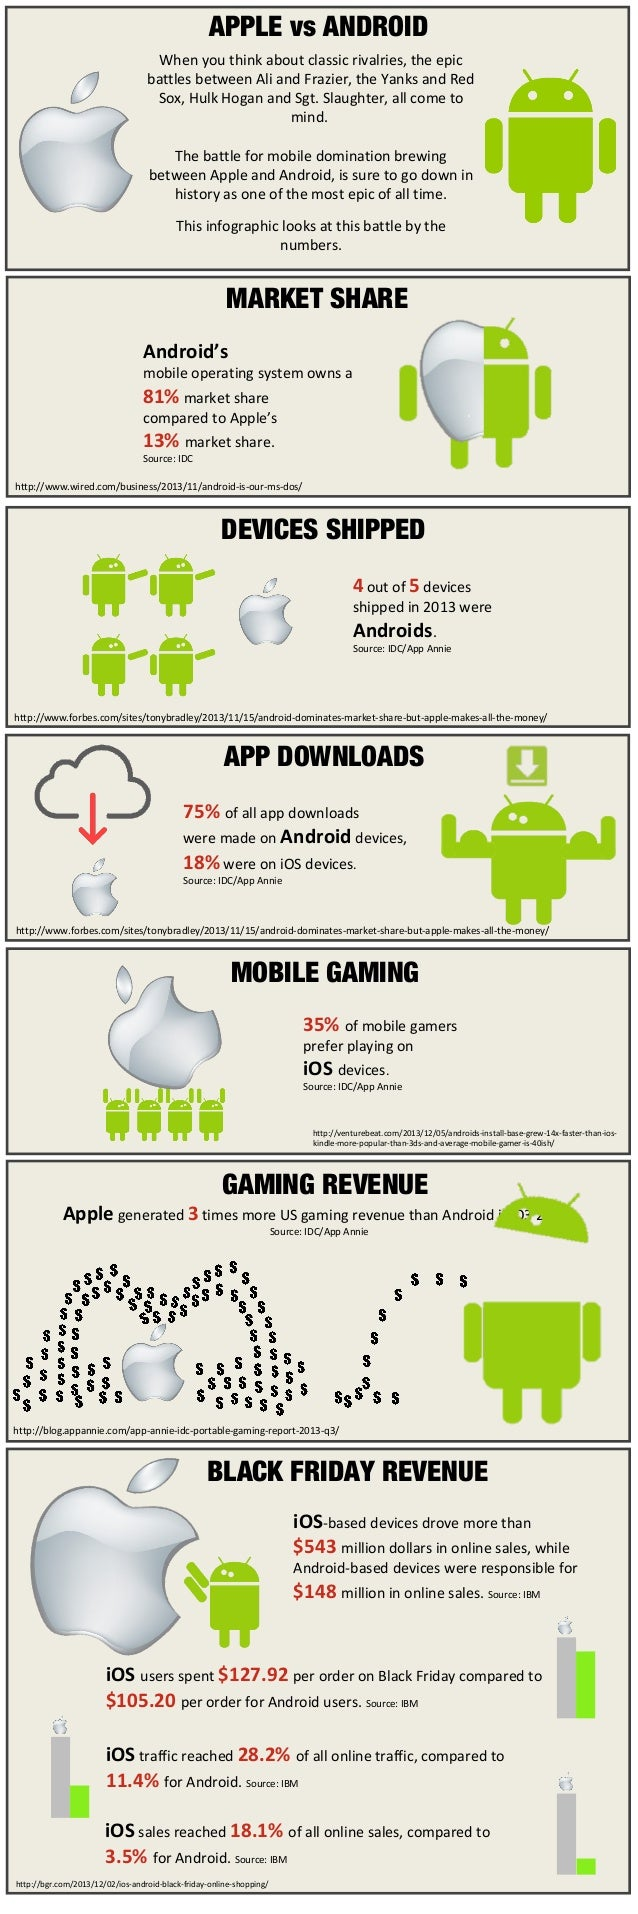 Apple vs Android: An Infographic